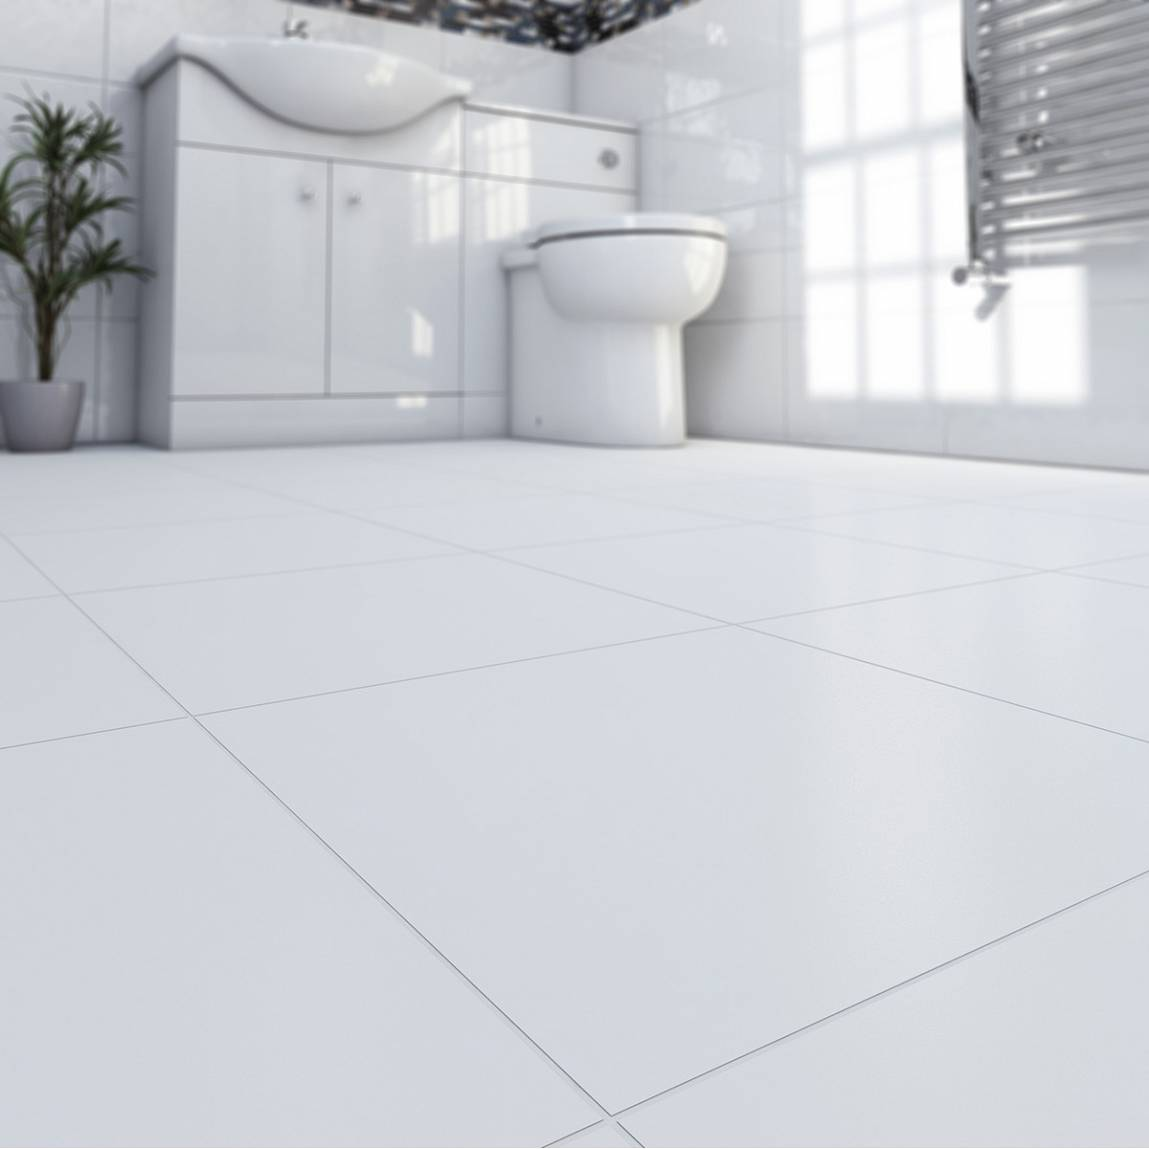 Oria Matte Super White Ceramic Floor Tile 33cm x 33cm